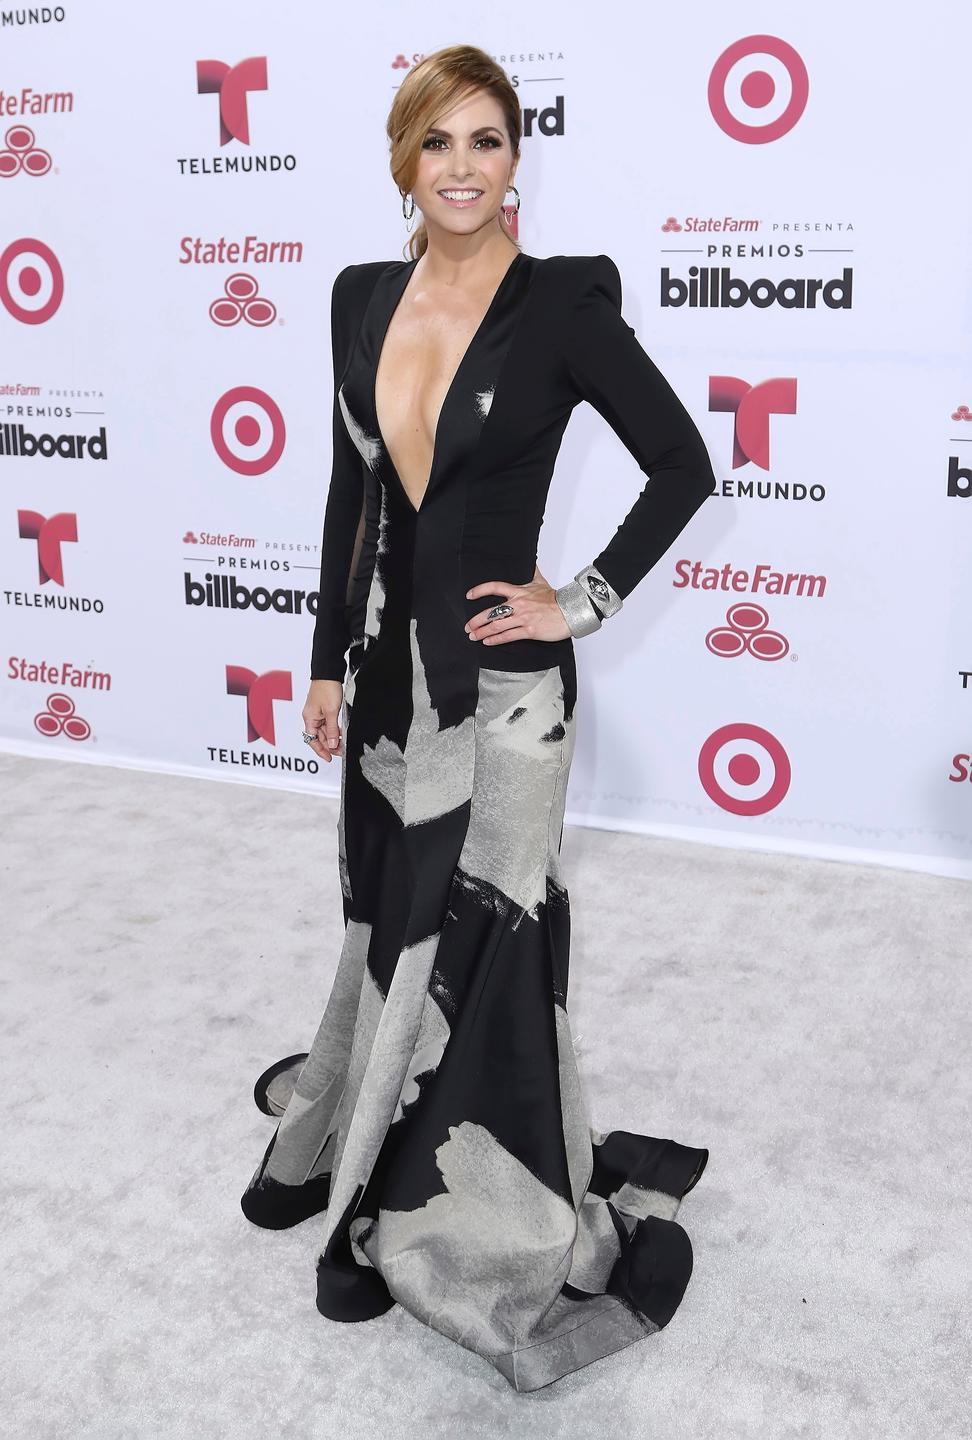 Lucero Premios Billboards